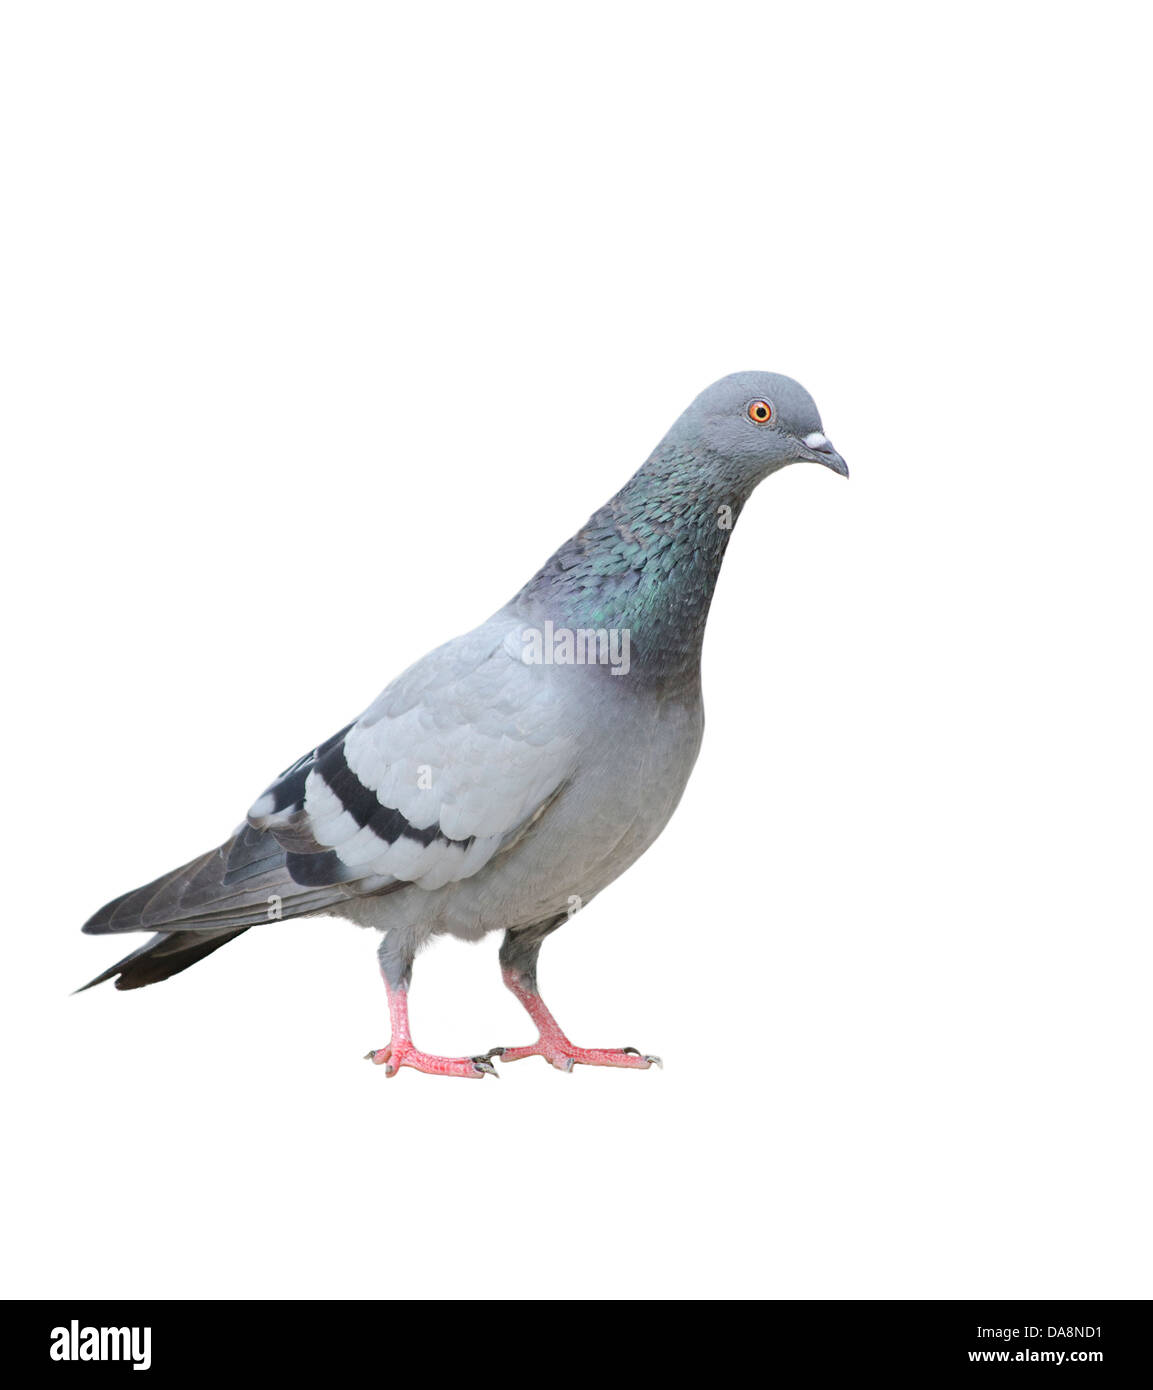 A pigeon against white background - Stock Image